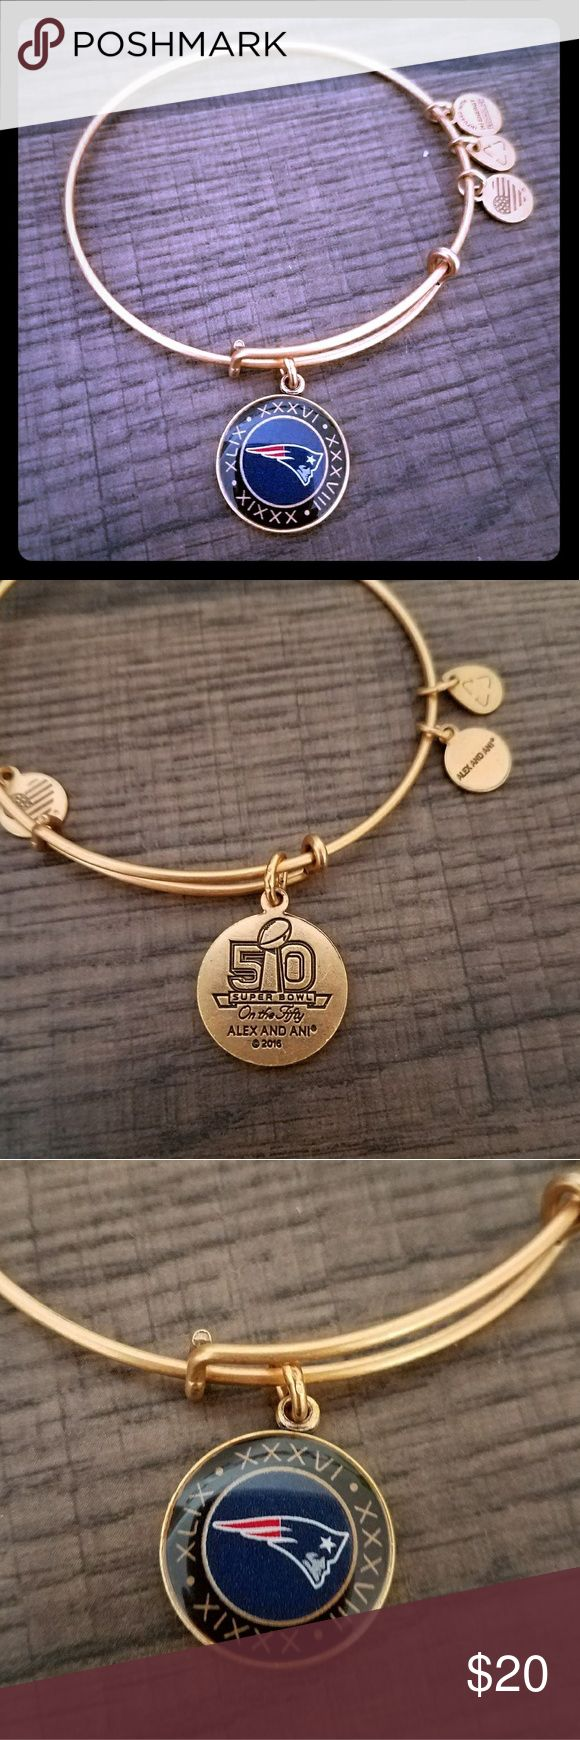 Gold Alex and Ani Patriots Superbowl 50 bracelet Has 4 dates of super bowl wins and is unique for being a Superbowl 50 win!! Tom Brady 12 go pats! Alex & Ani Jewelry Bracelets